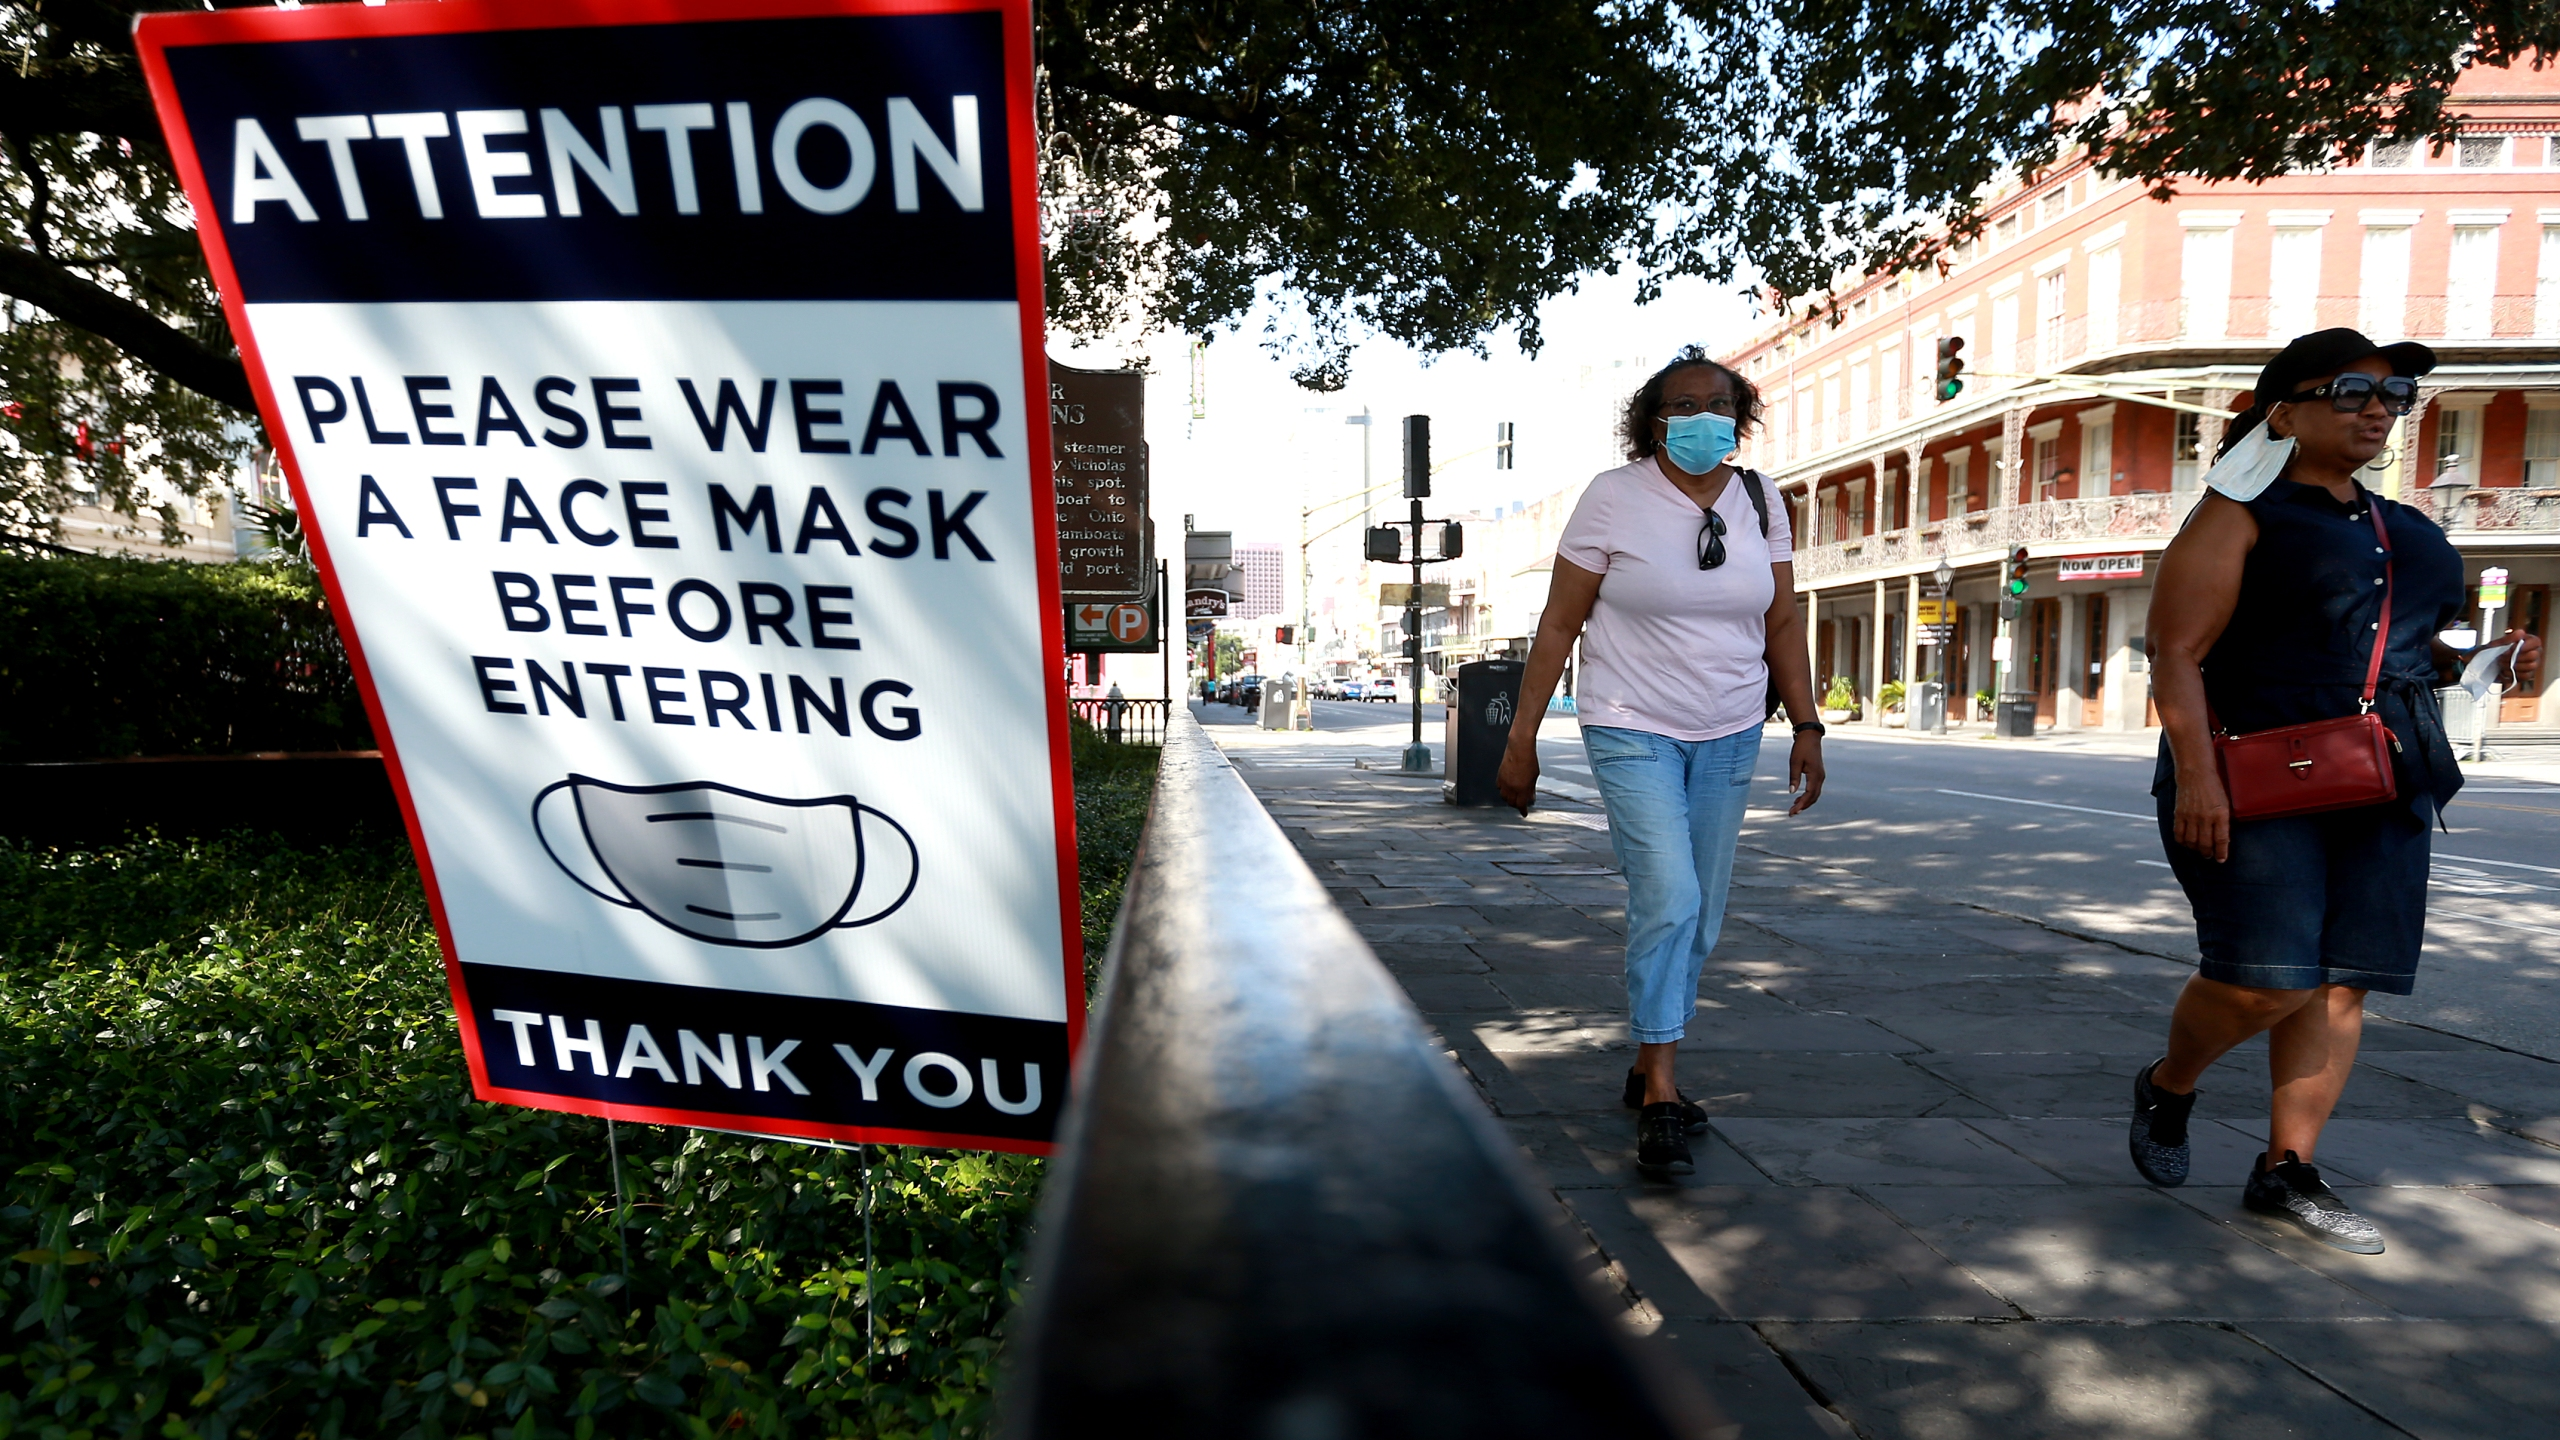 Visitors walk past face mask signs along Decatur Street in the French Quarter on July 14, 2020, in New Orleans, Louisiana. (Sean Gardner/Getty Images)